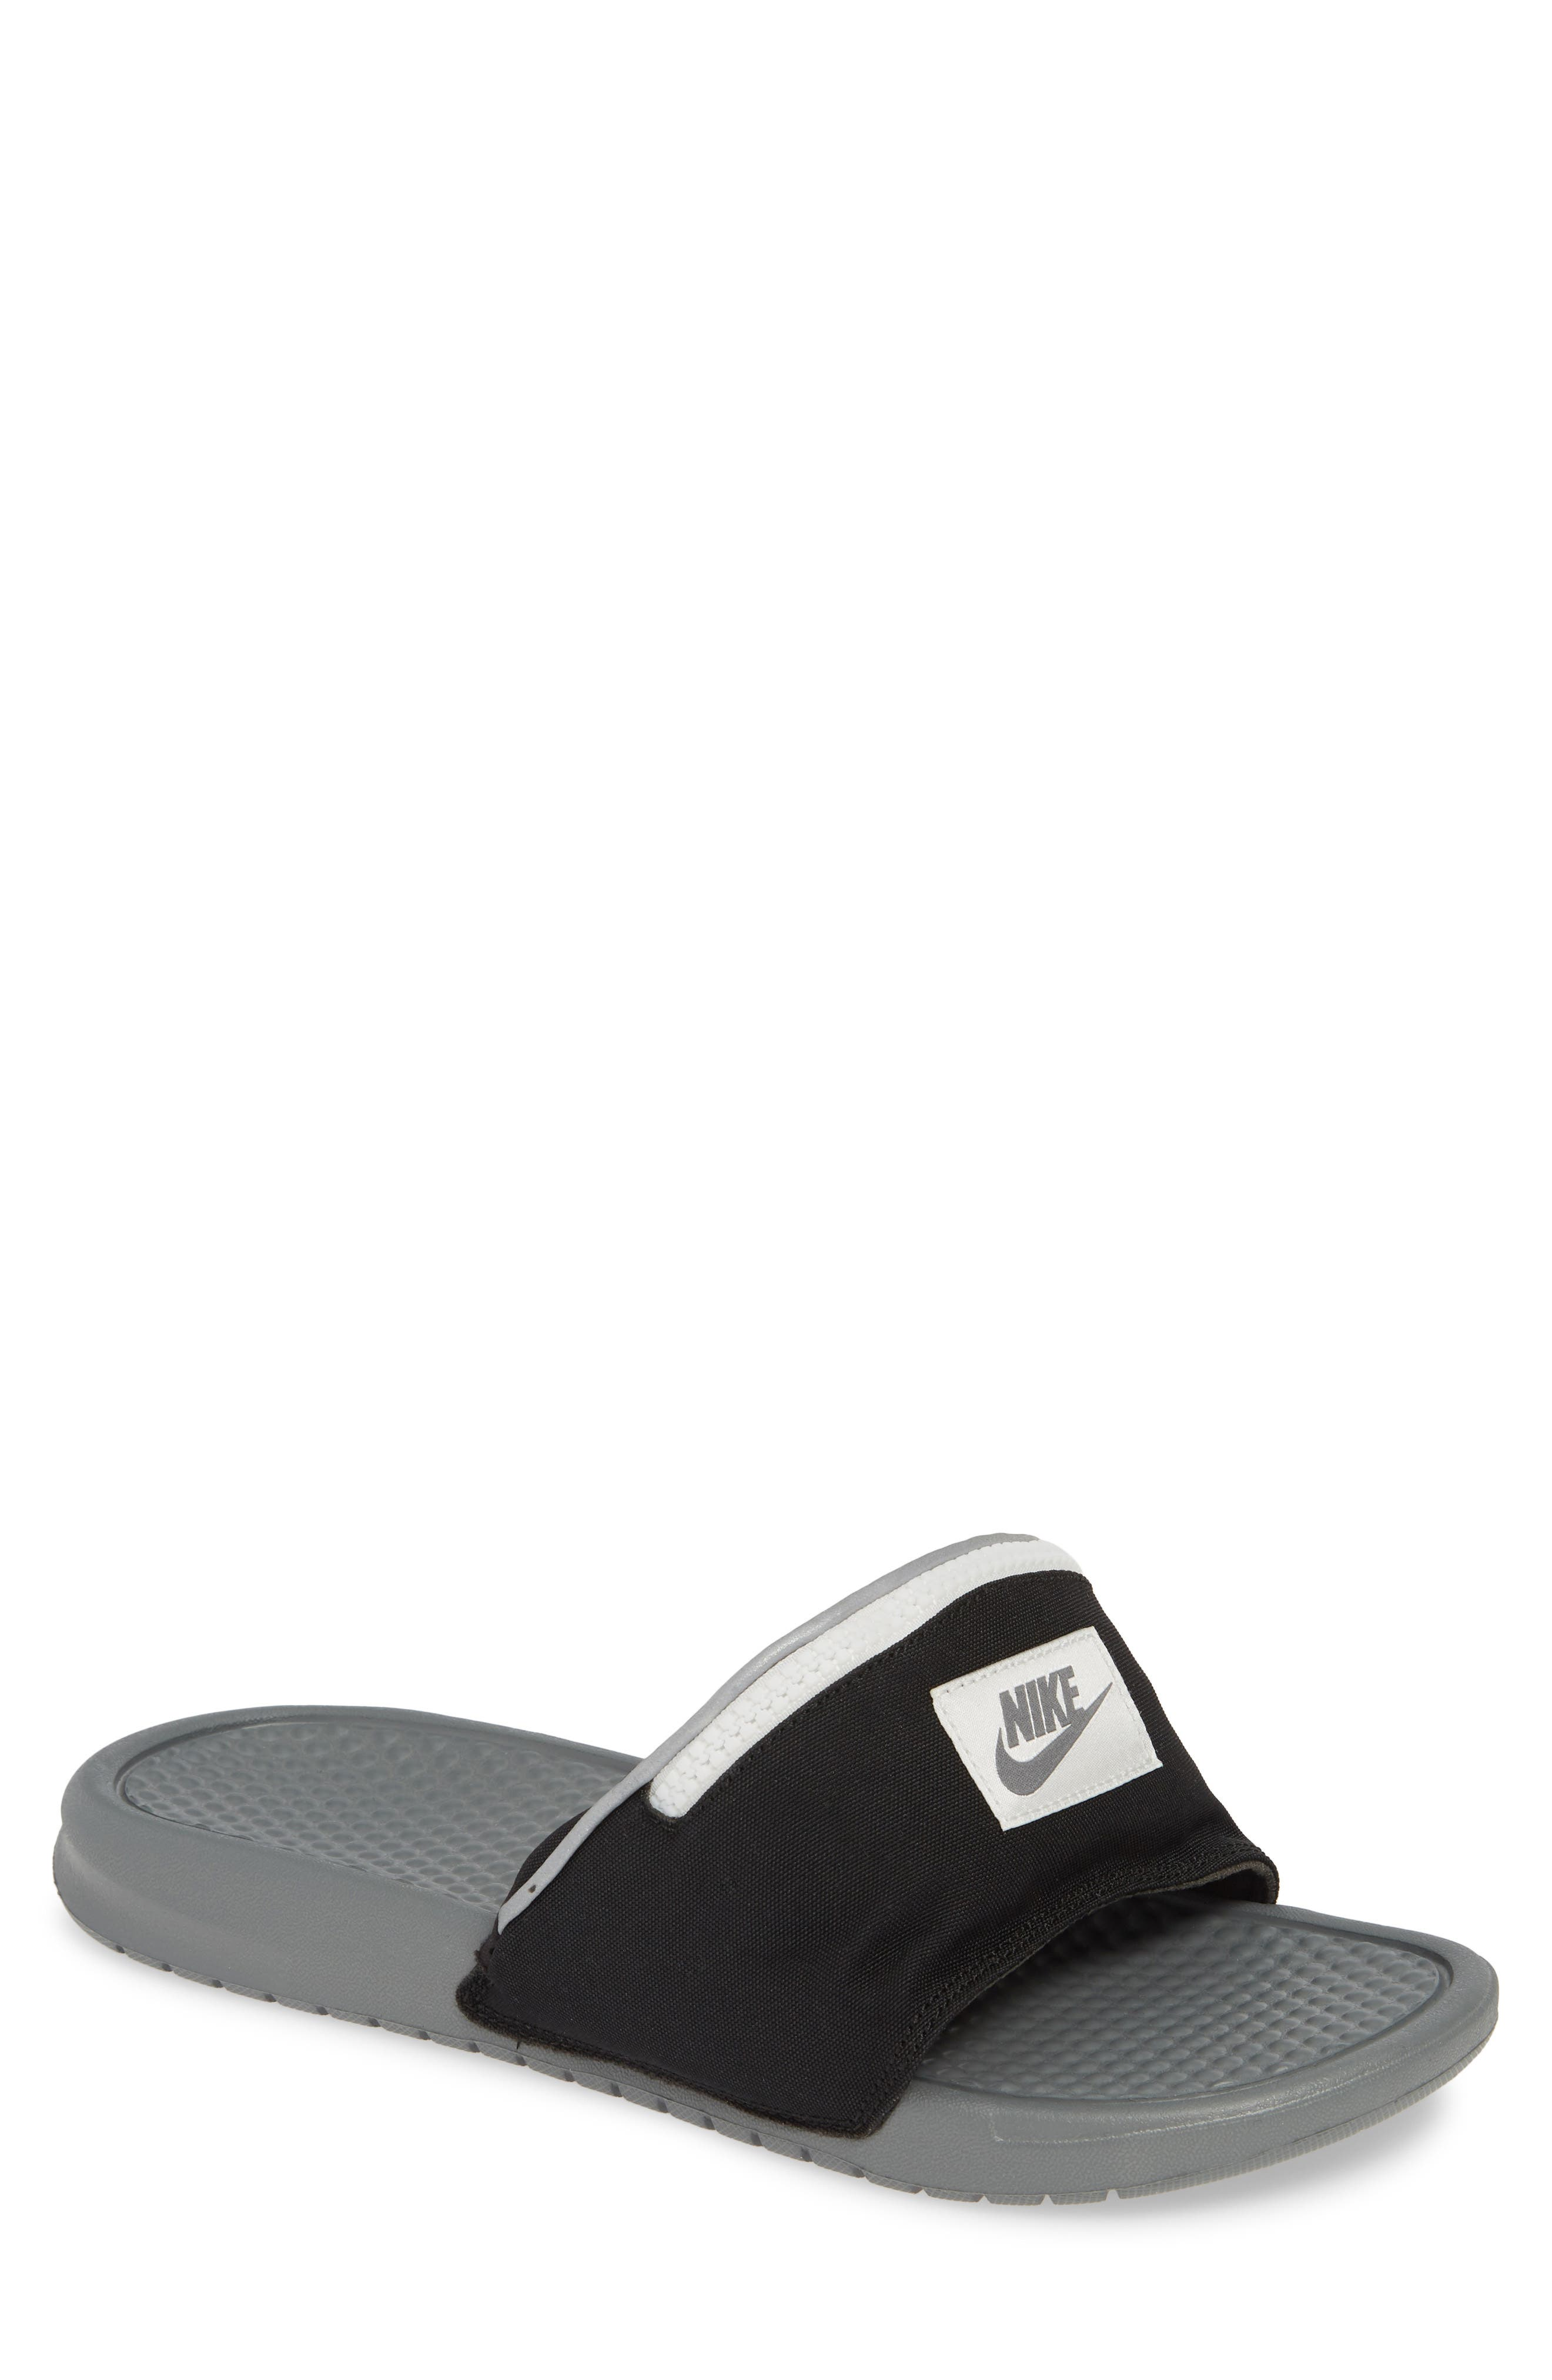 flip flops with fanny pack